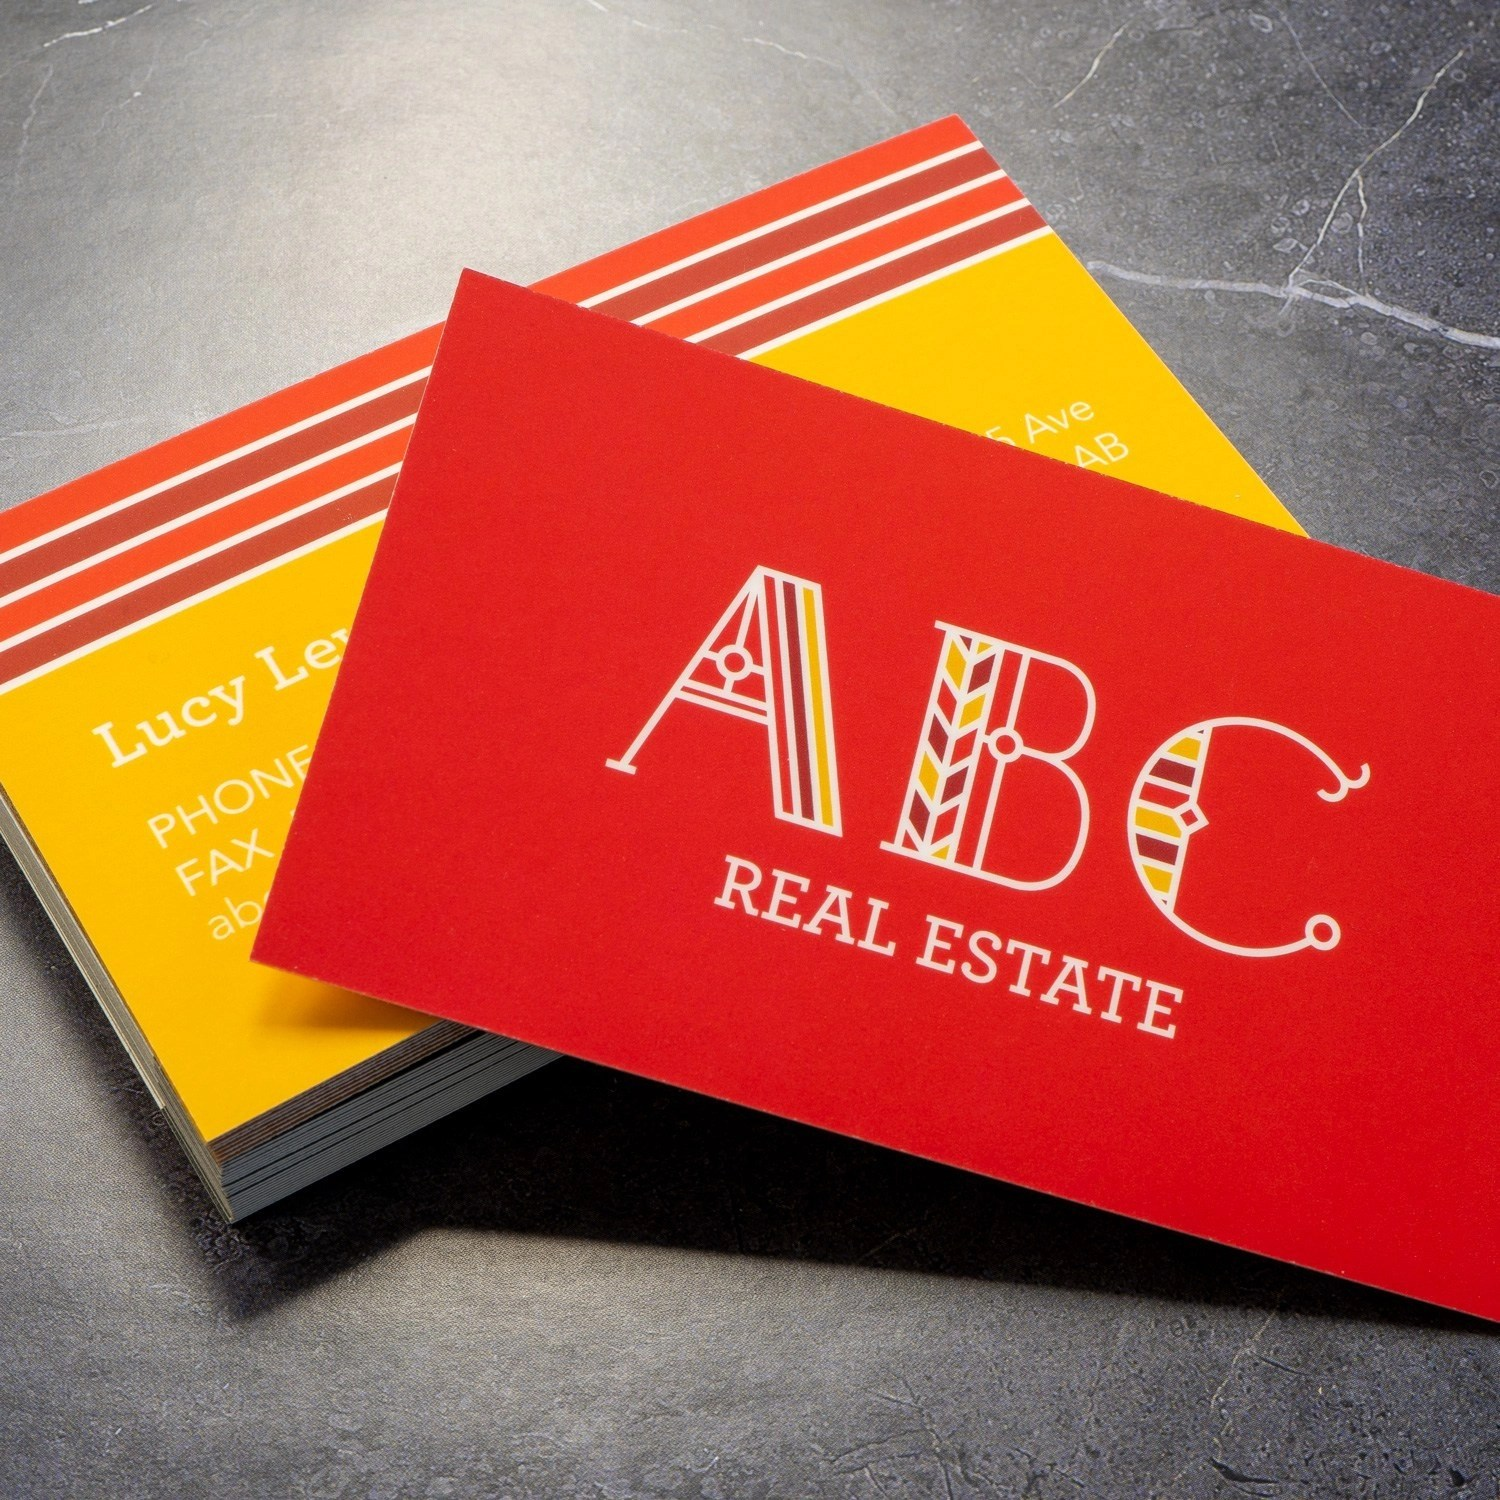 Soft Touch Business Cards printed in Kelowna